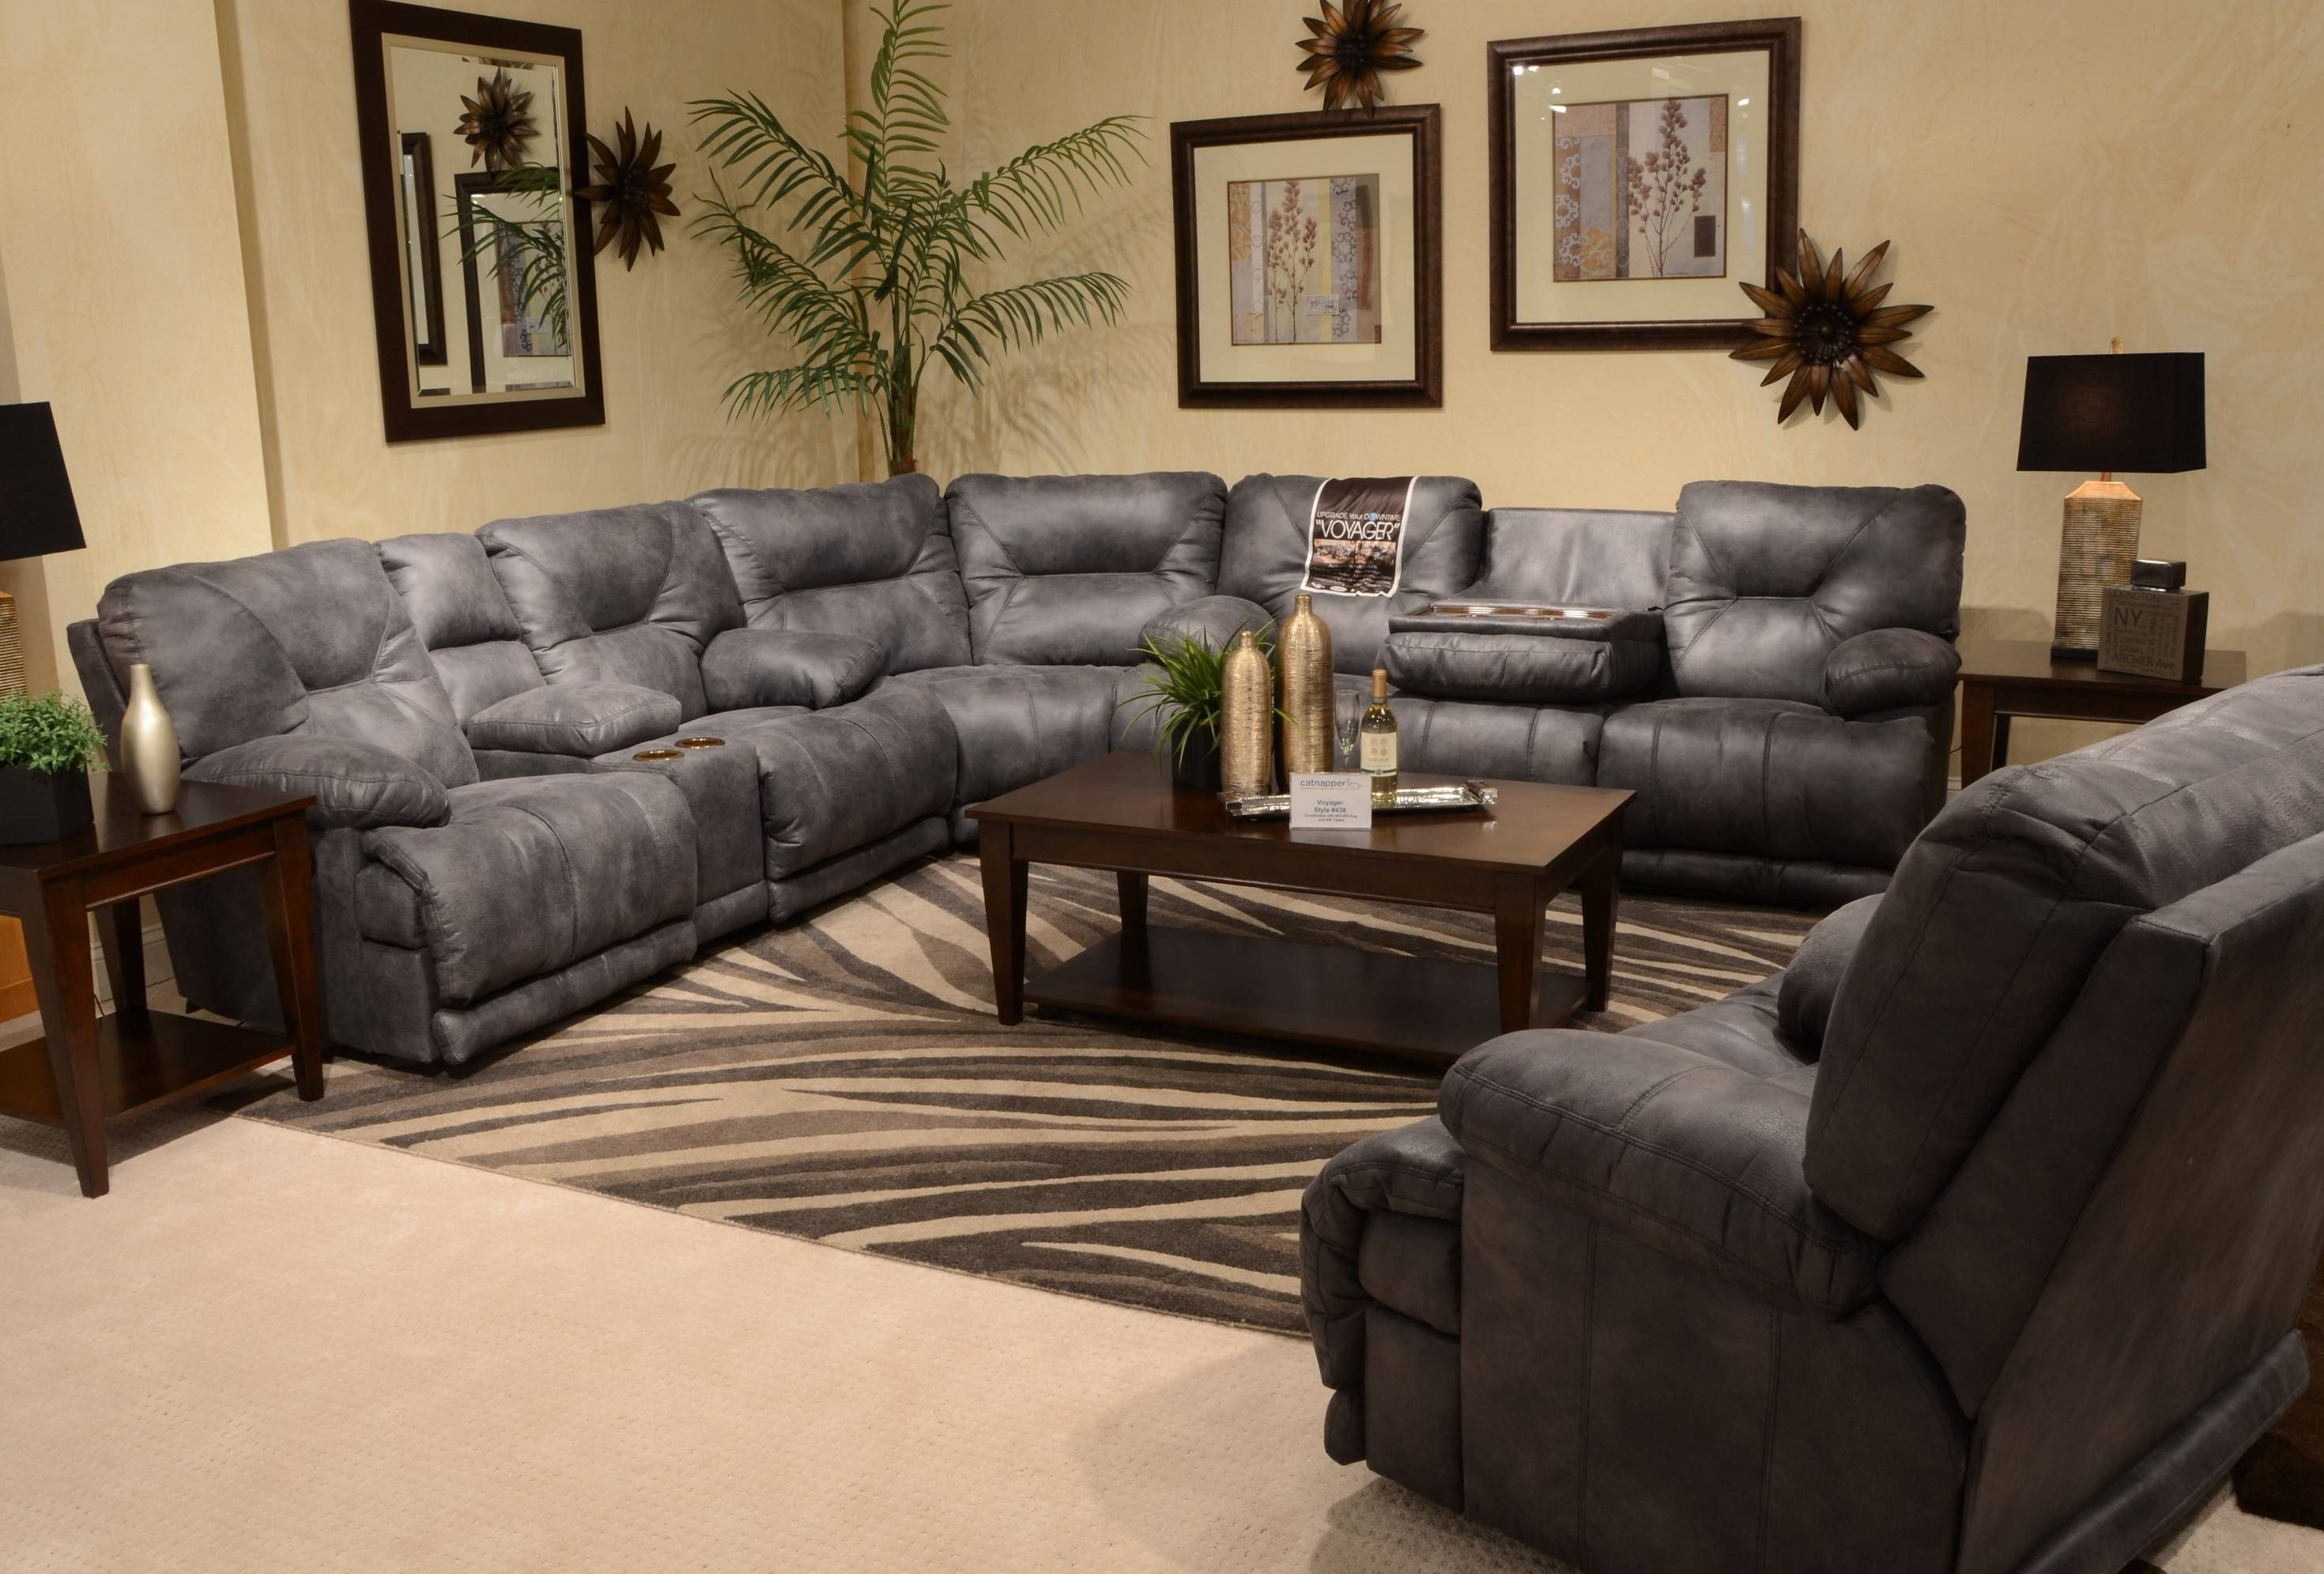 Furniture: Classic And Traditional Style Velvet Sectional Sofa For regarding Sectional Sofa With Oversized Ottoman (Image 7 of 30)